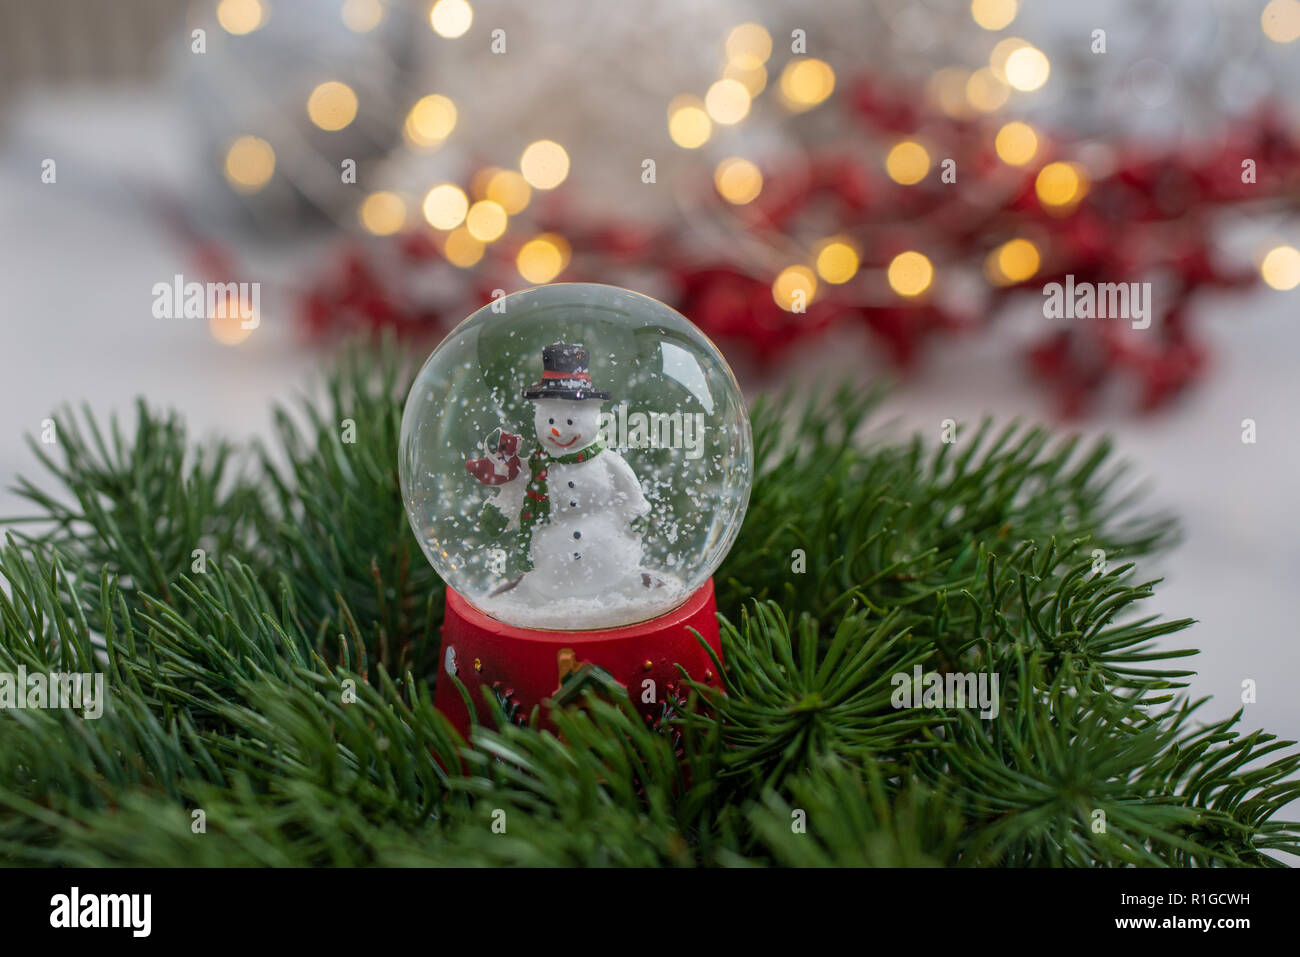 Christmas In Evergreen Snow Globe.Snow Globe With Snow Flakes And Festive Background Stock